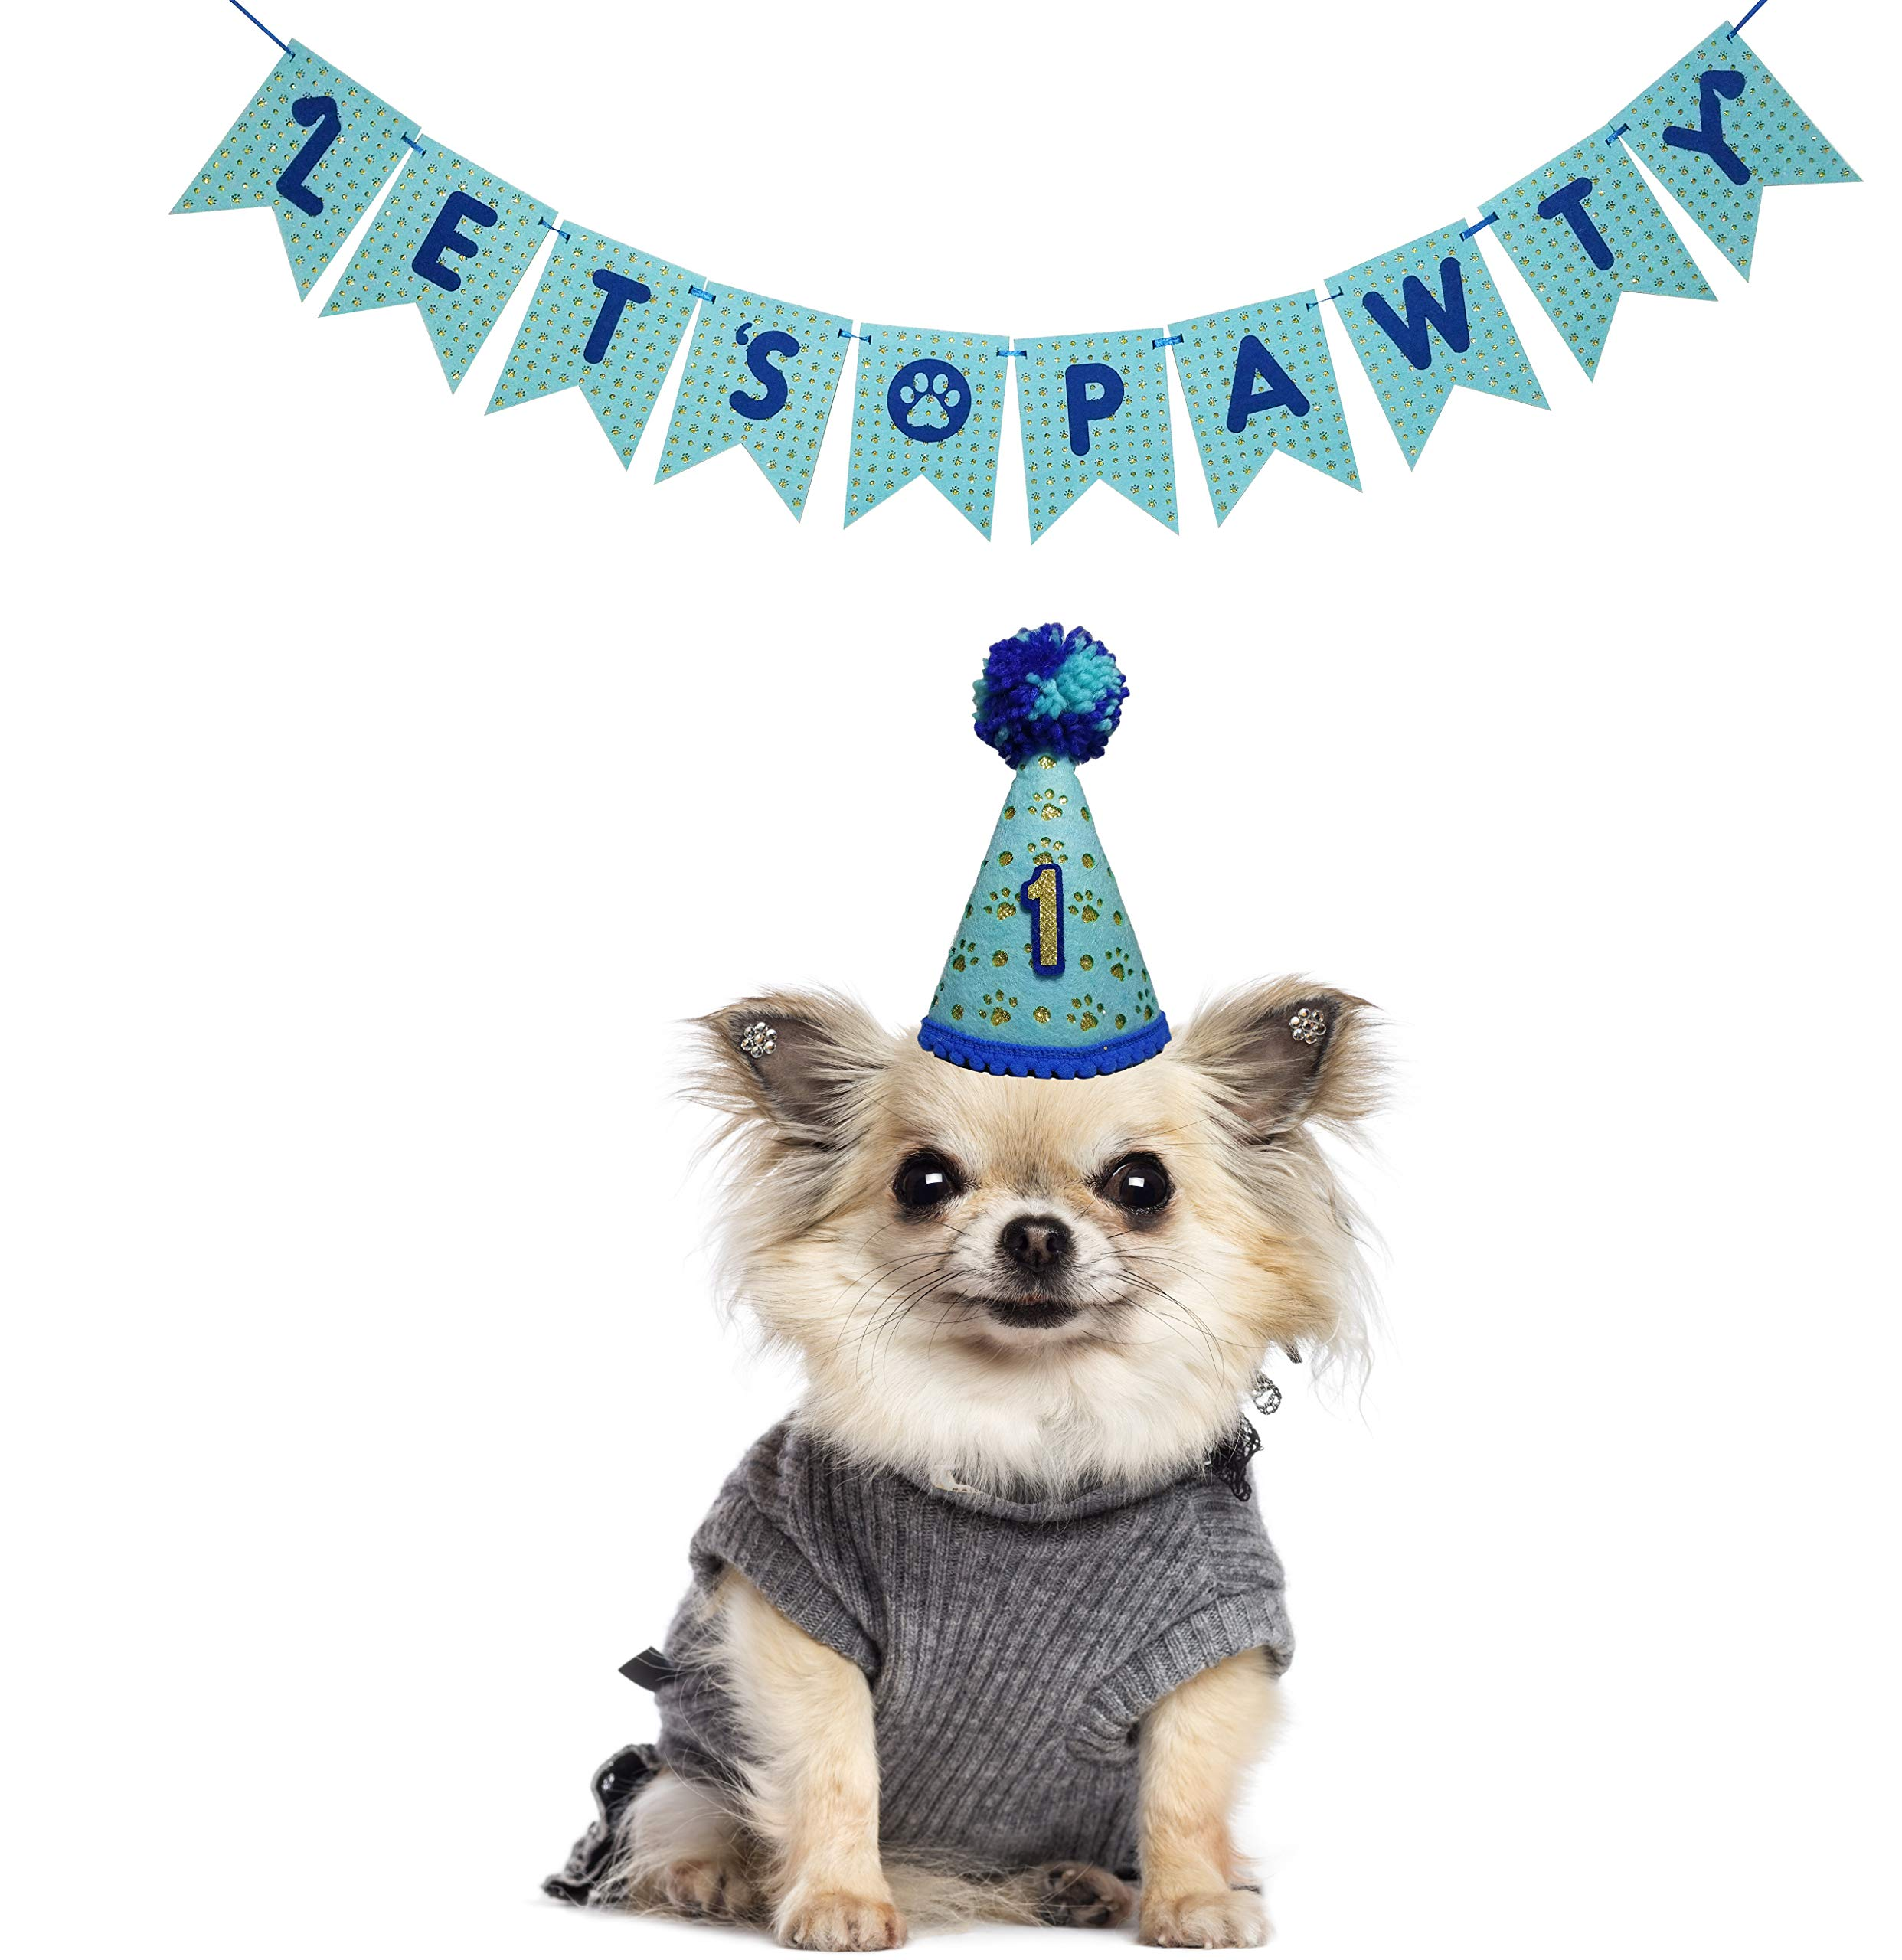 Orange Dolly Lets Pawty Dog 1st Birthday Party Decorations Blue-Puppy Dog Pals Happy Birthday Party Supplies-Pet Party Decorations Hat Banner- Kitty Cat Party Supplies-Small Dog Cat Party Decor